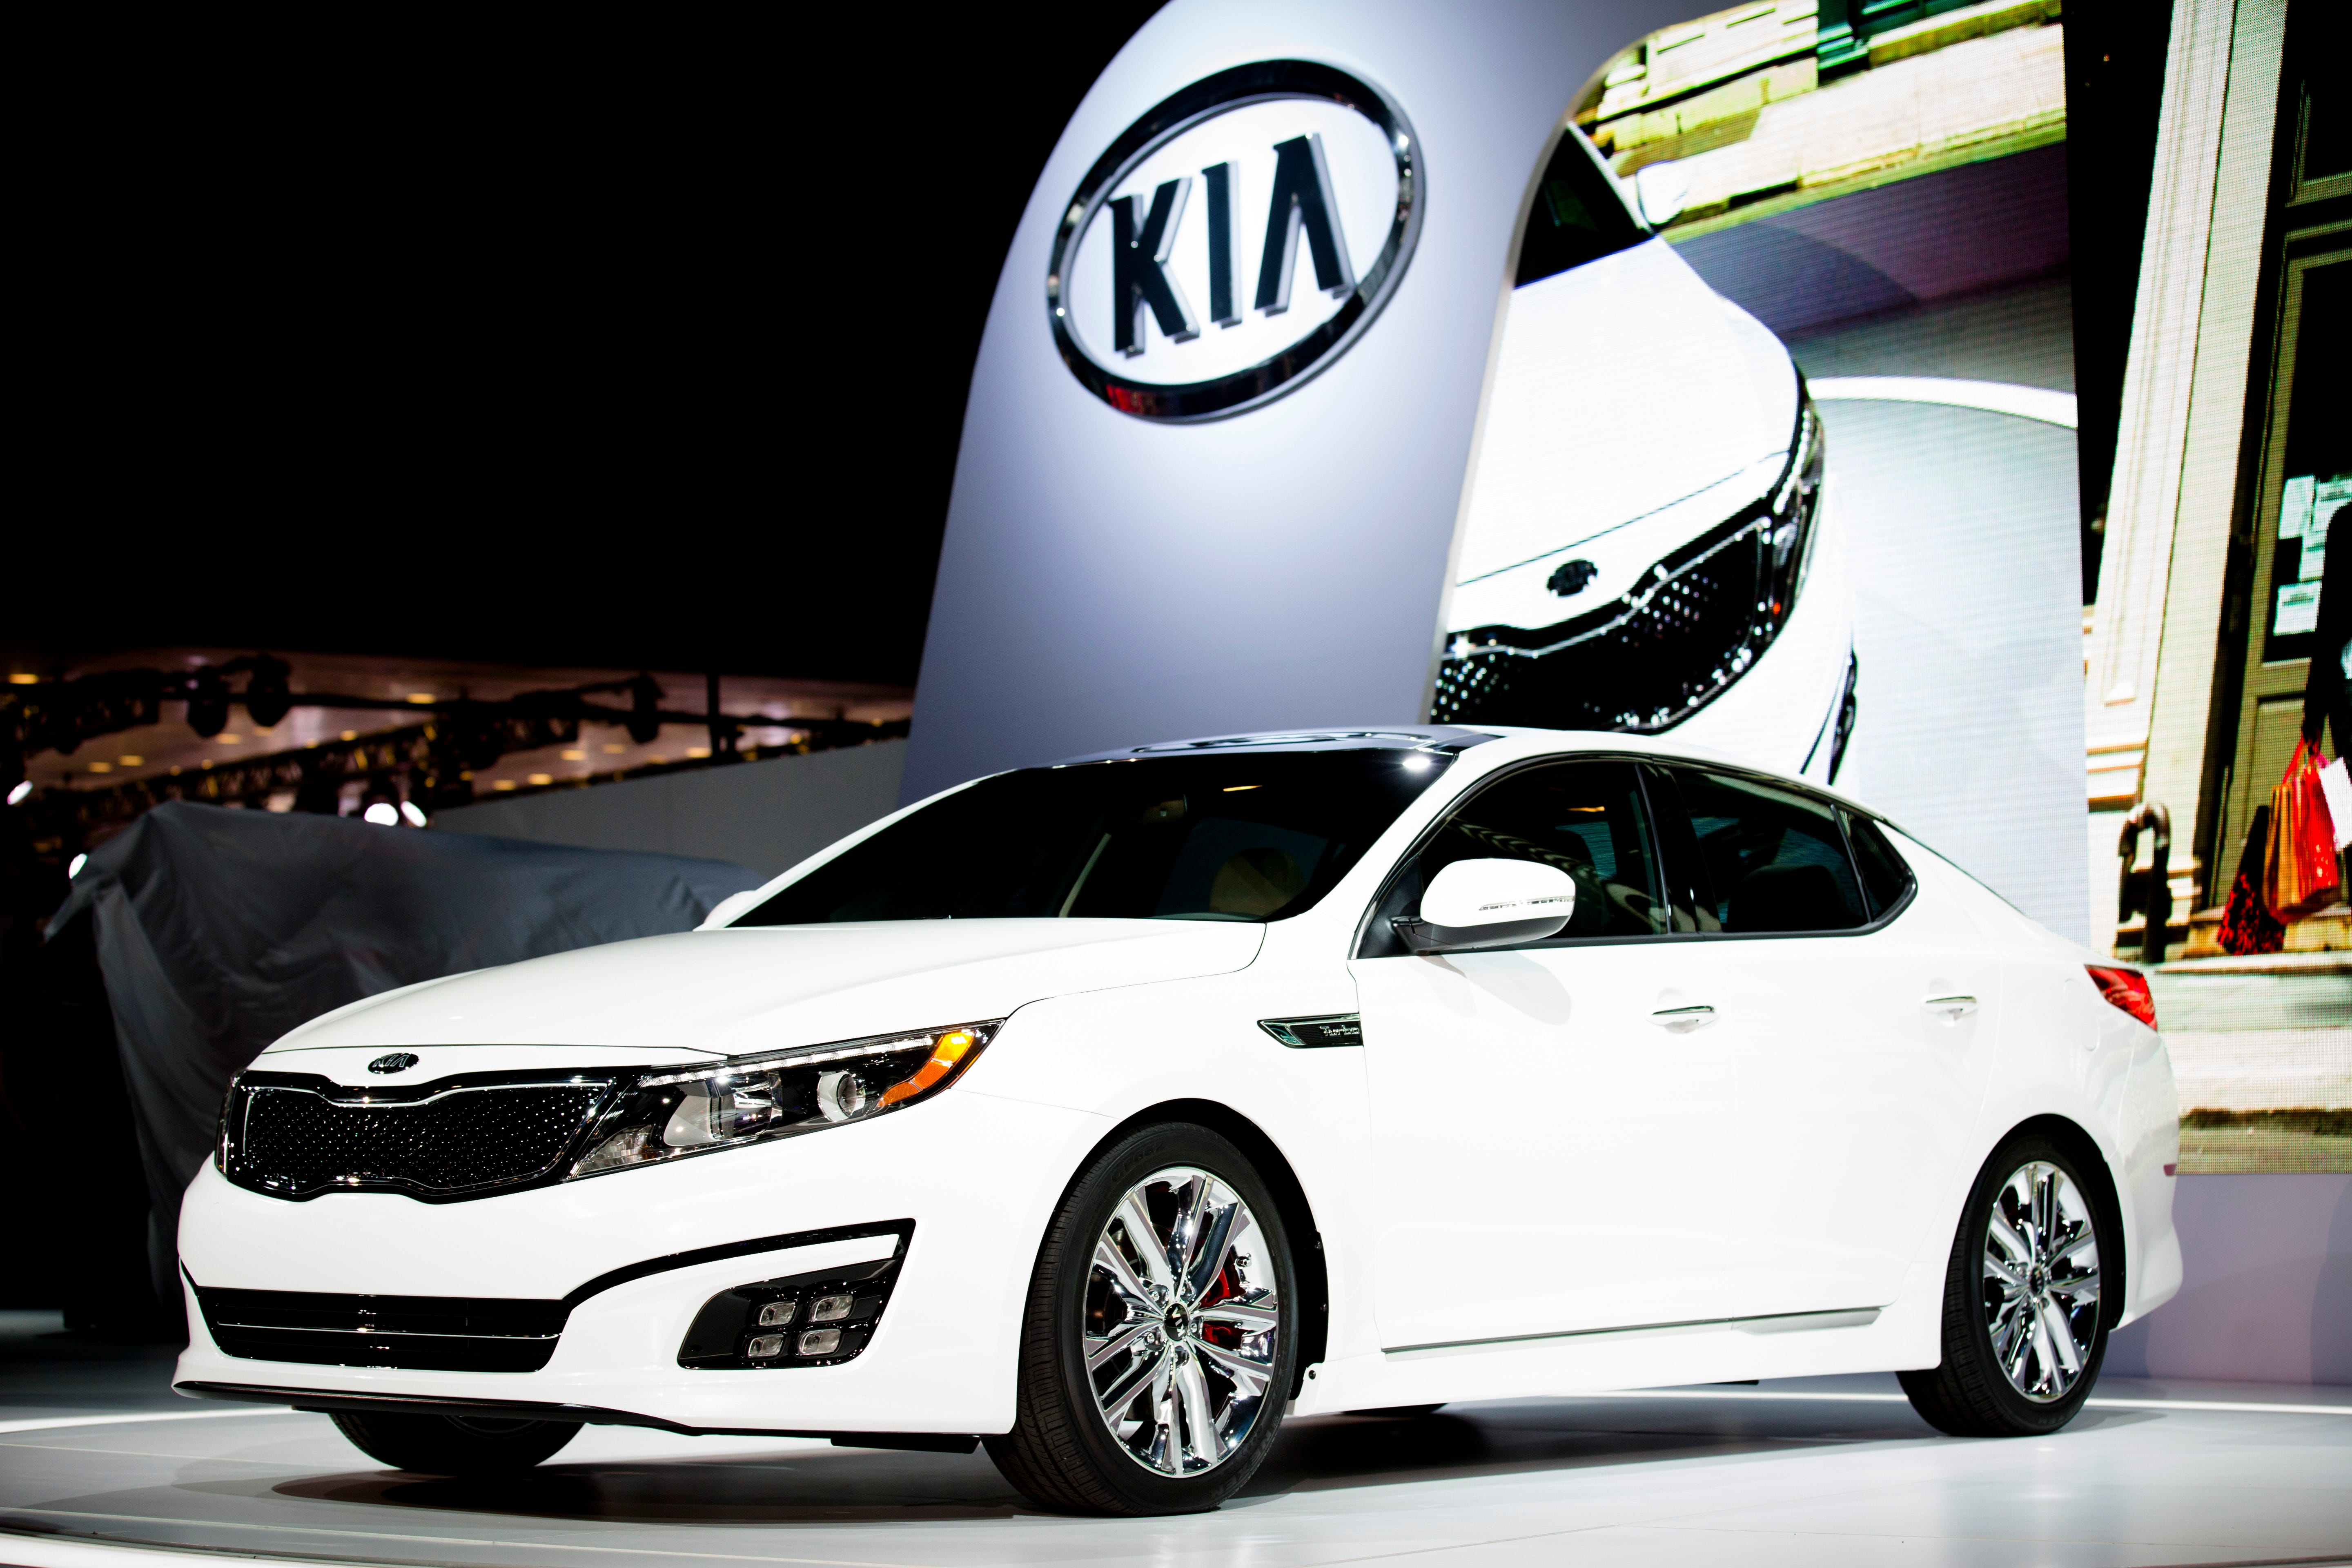 Kia recall issued to fix Sorento, Forte, Optima, Soul vehicles that could catch fire